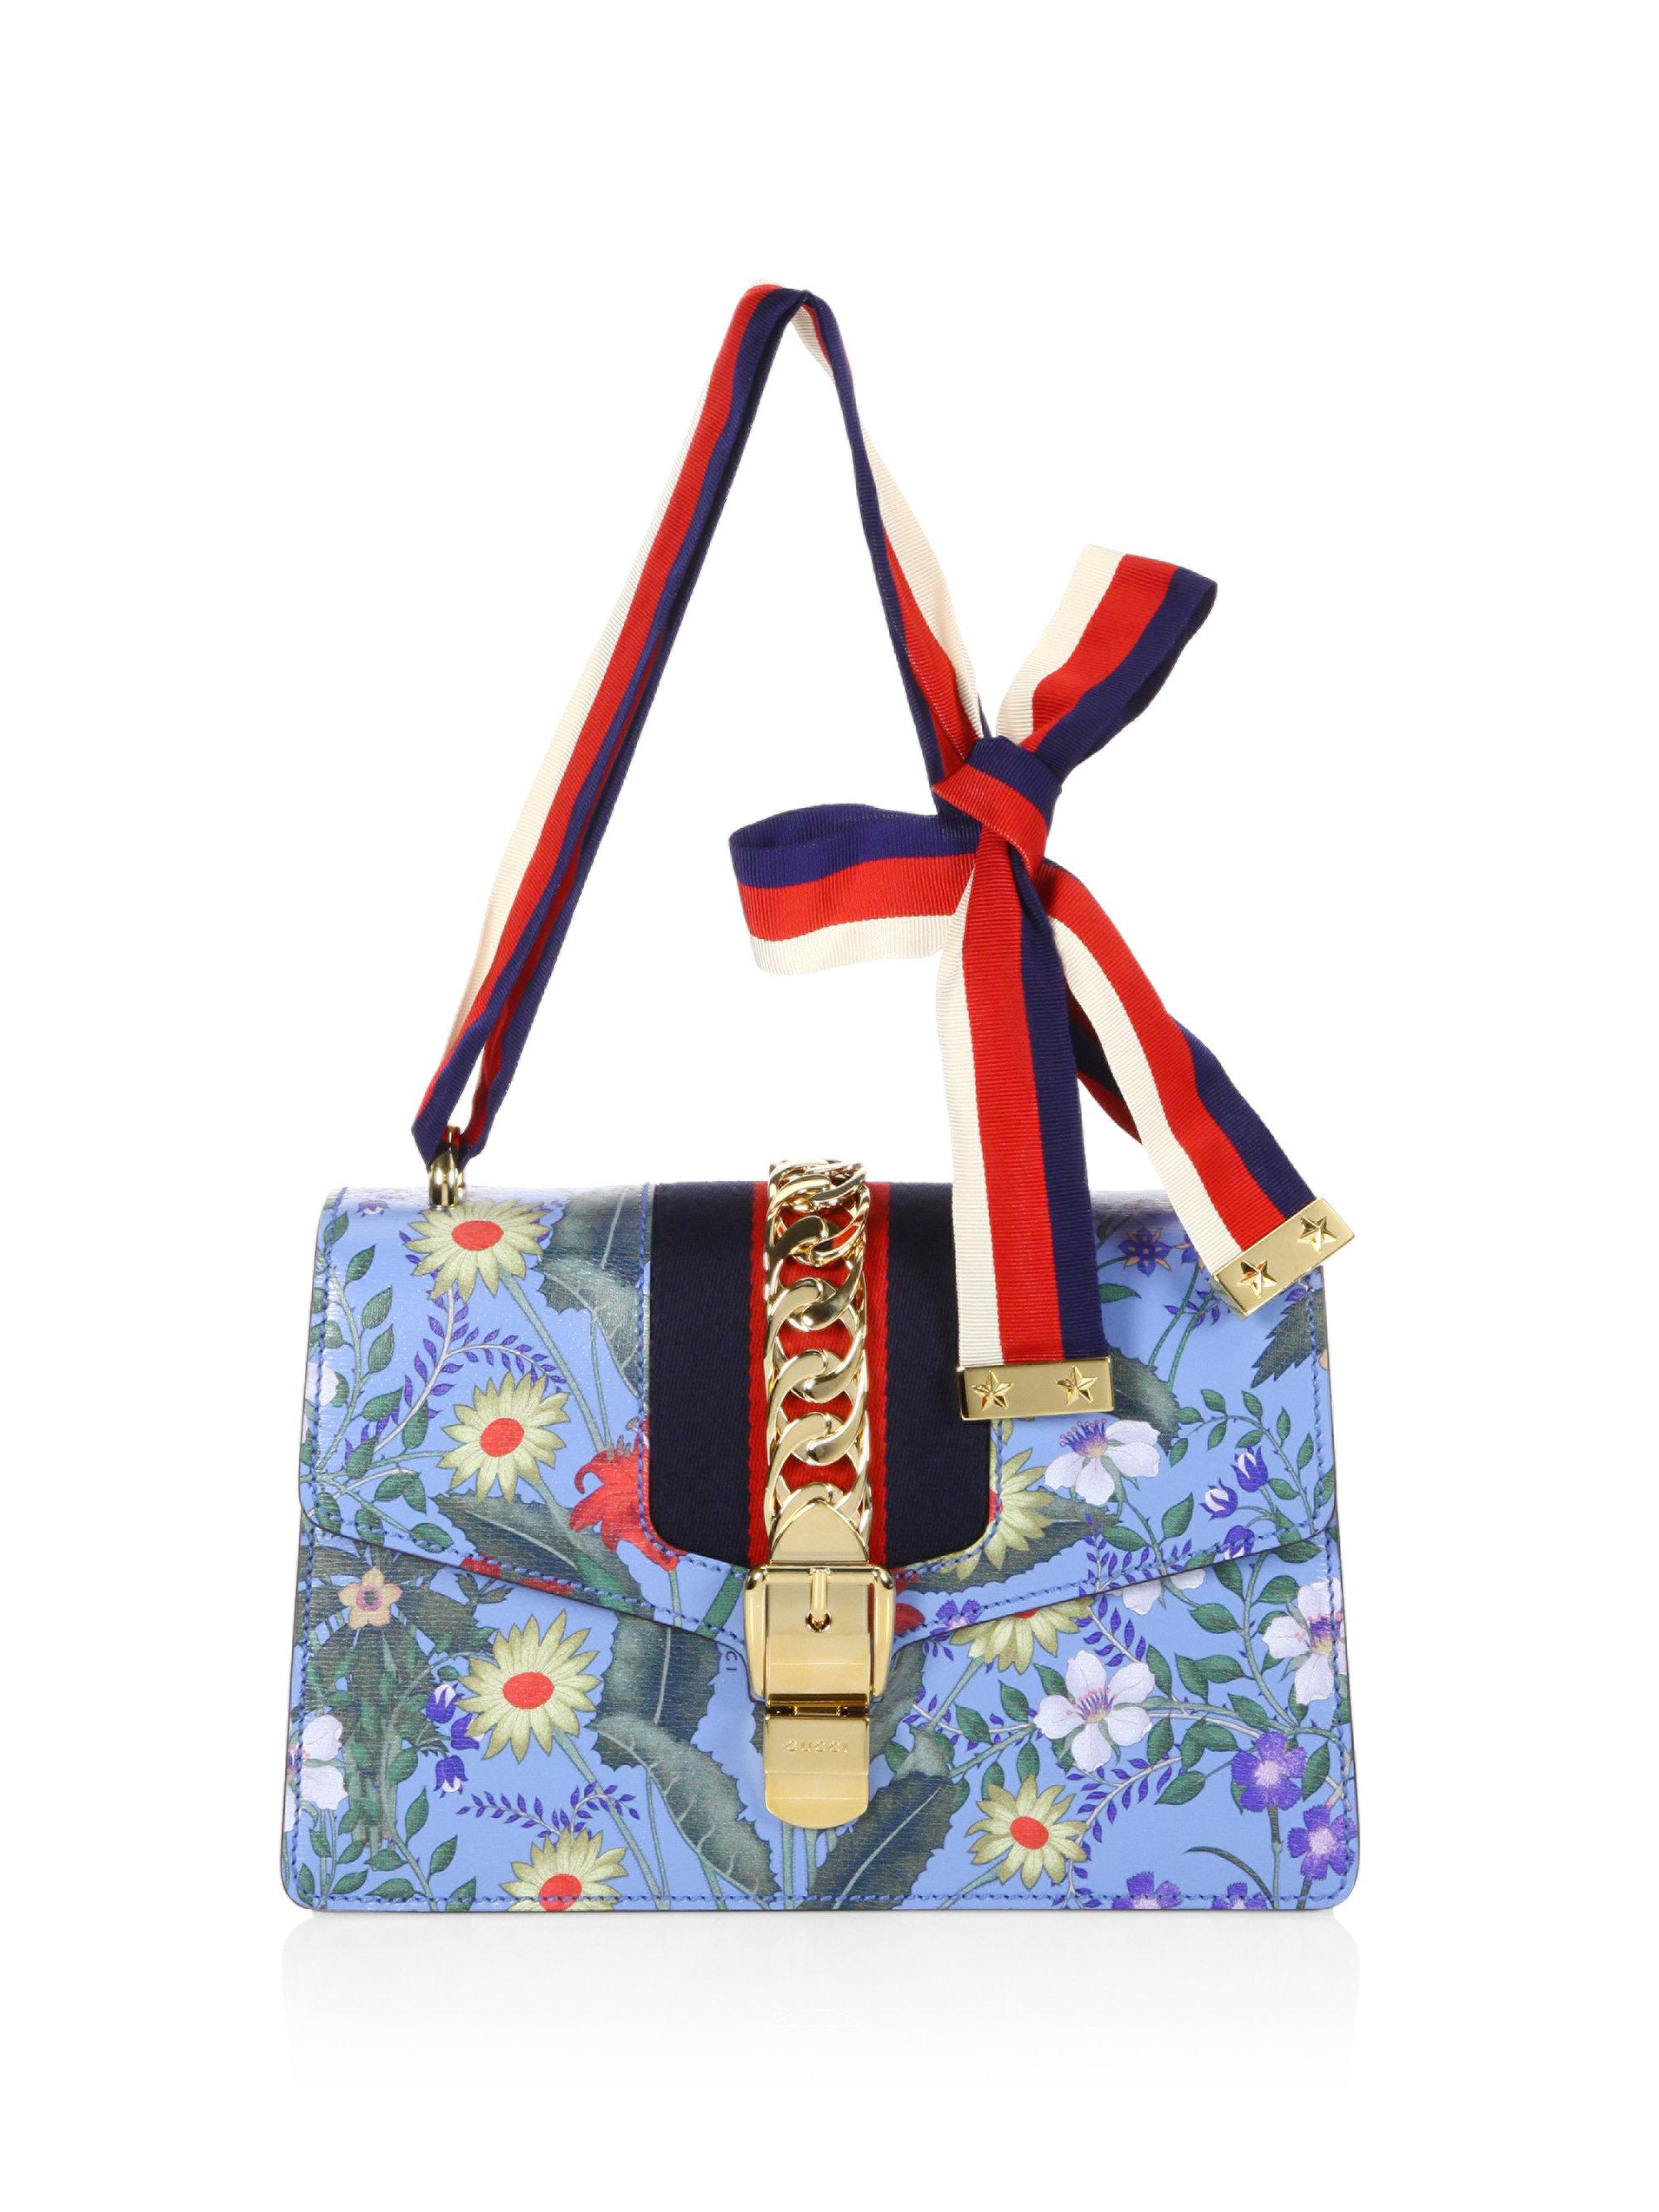 e40a3ba7e96 Lyst - Gucci Sylvie Flora Leather Shoulder Bag in Blue